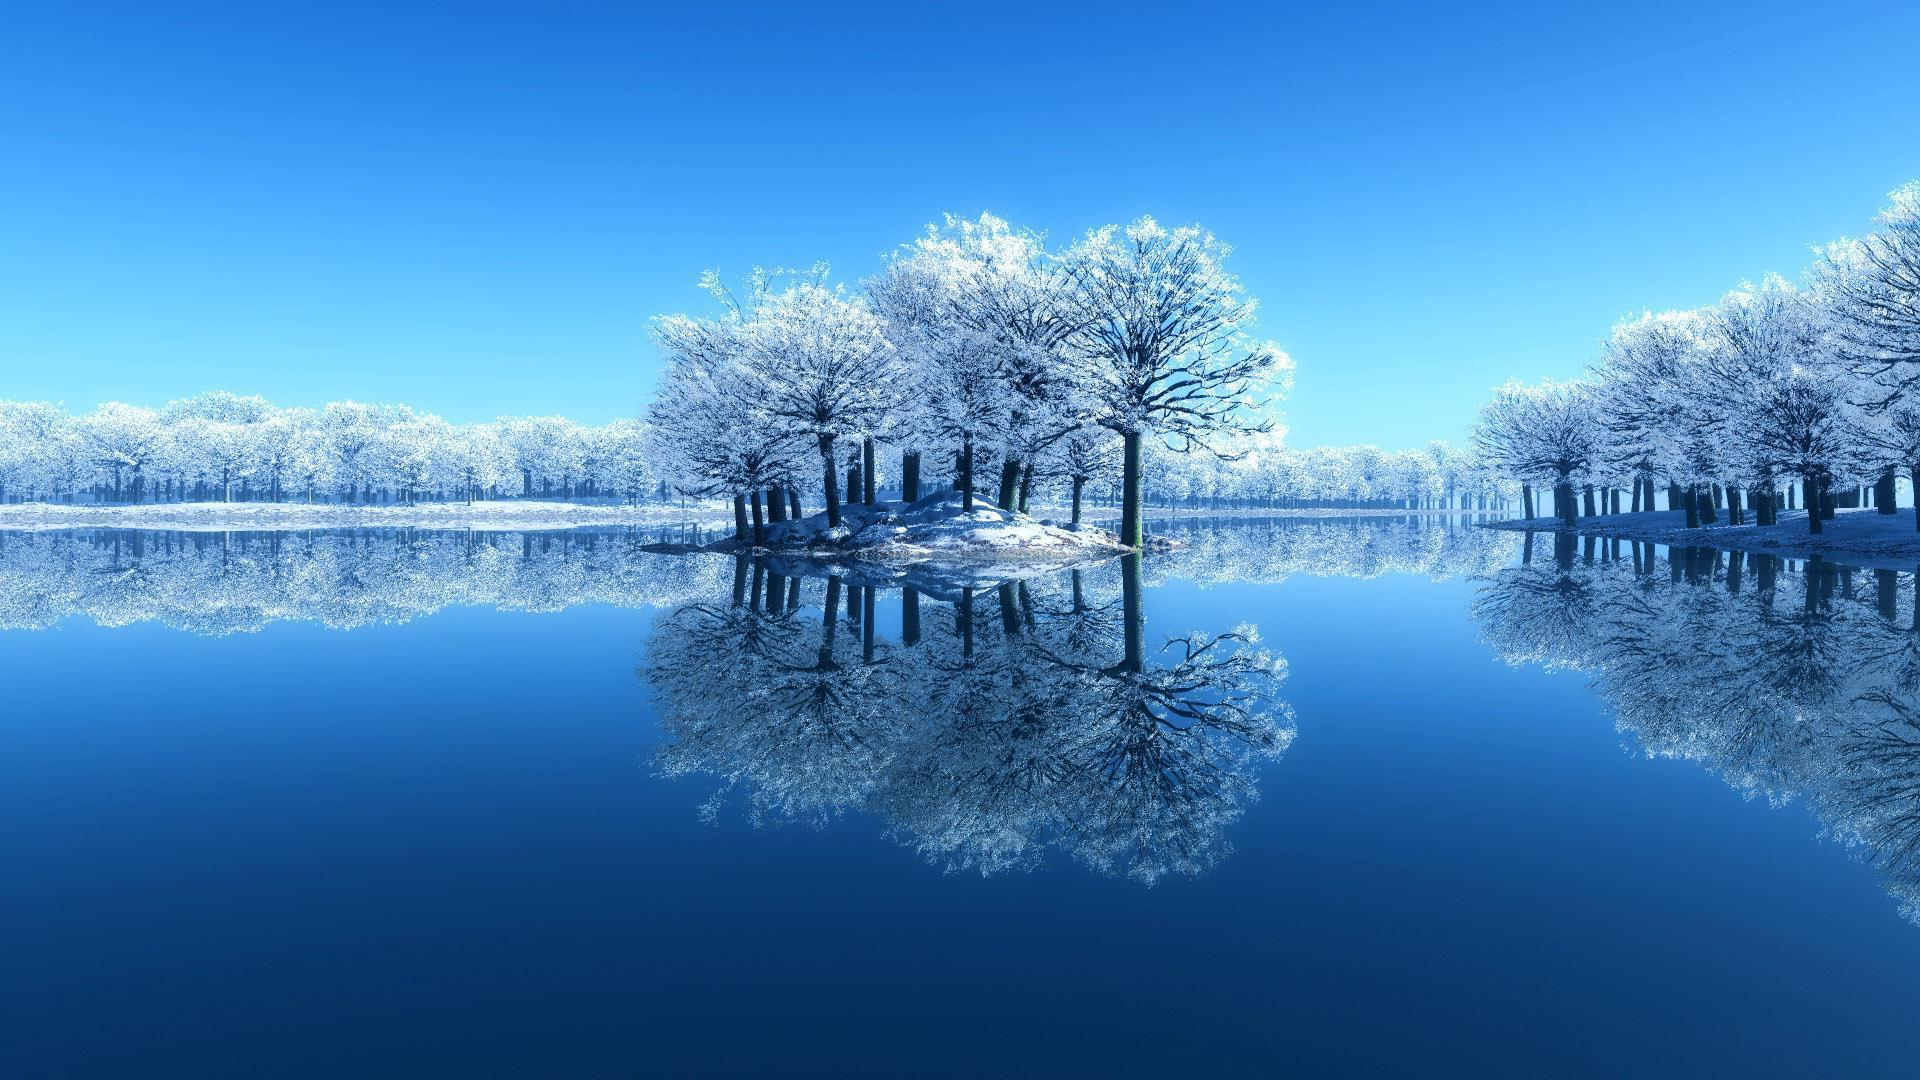 Hq 3d Wallpapers Free Download Hd Winter Water Reflection Wallpaper Download Free 139875